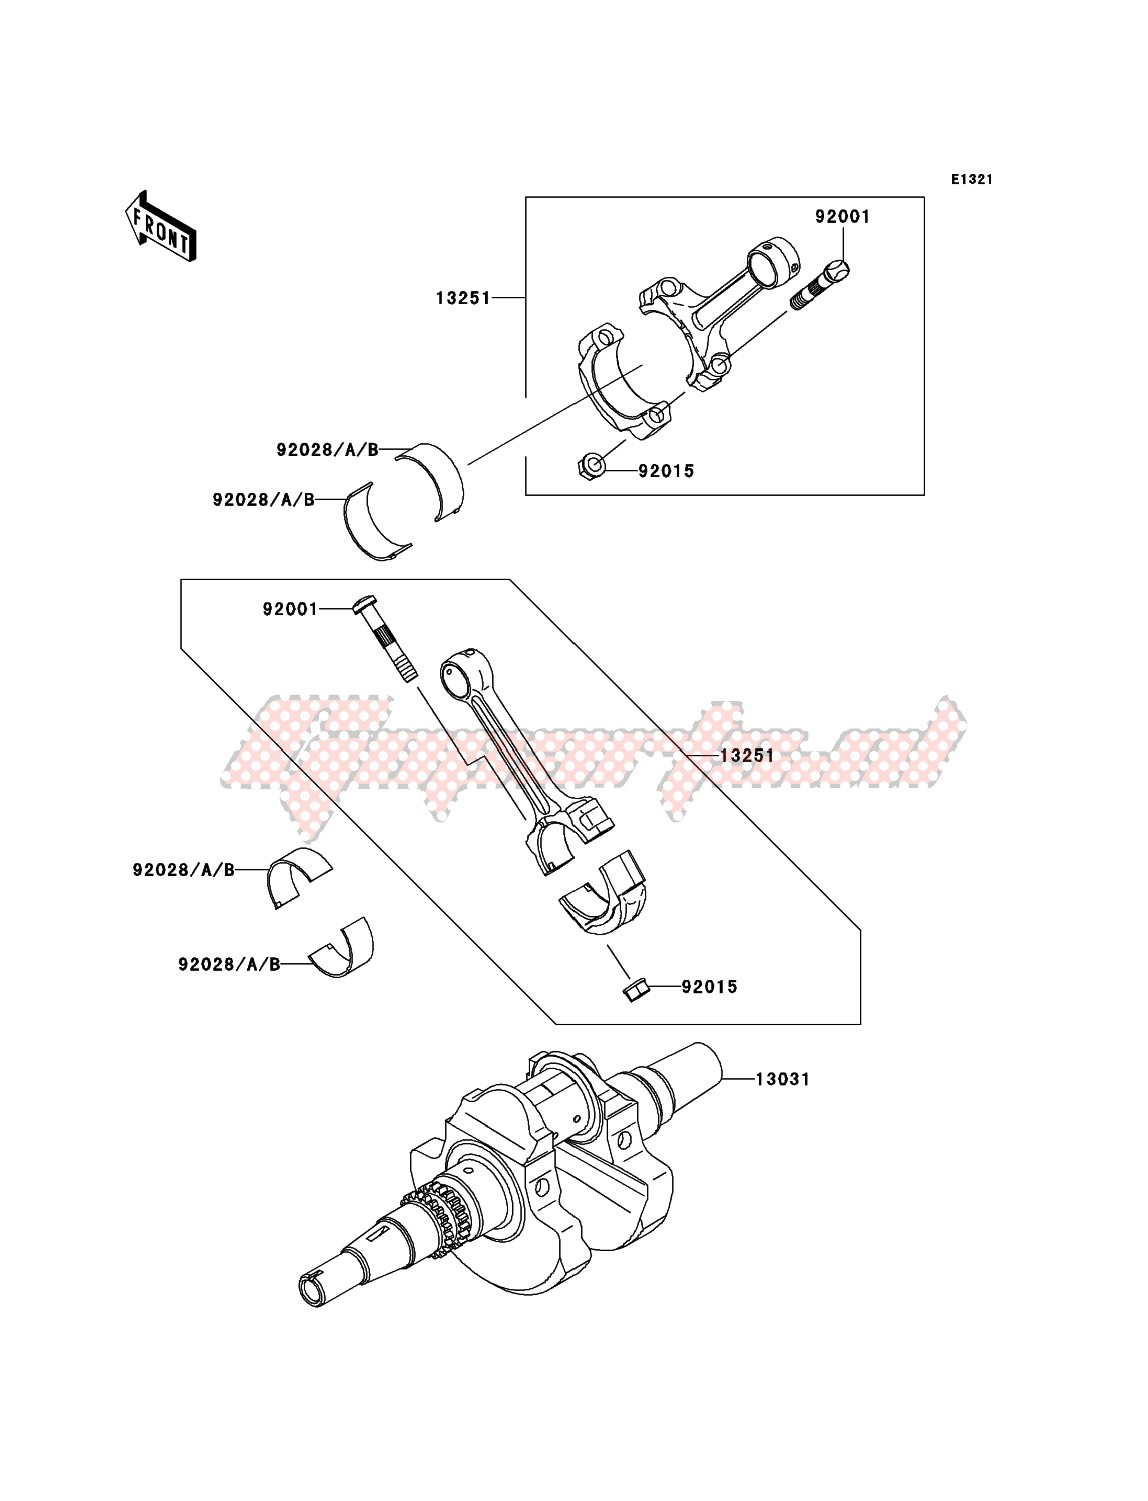 Engine-Crankshaft